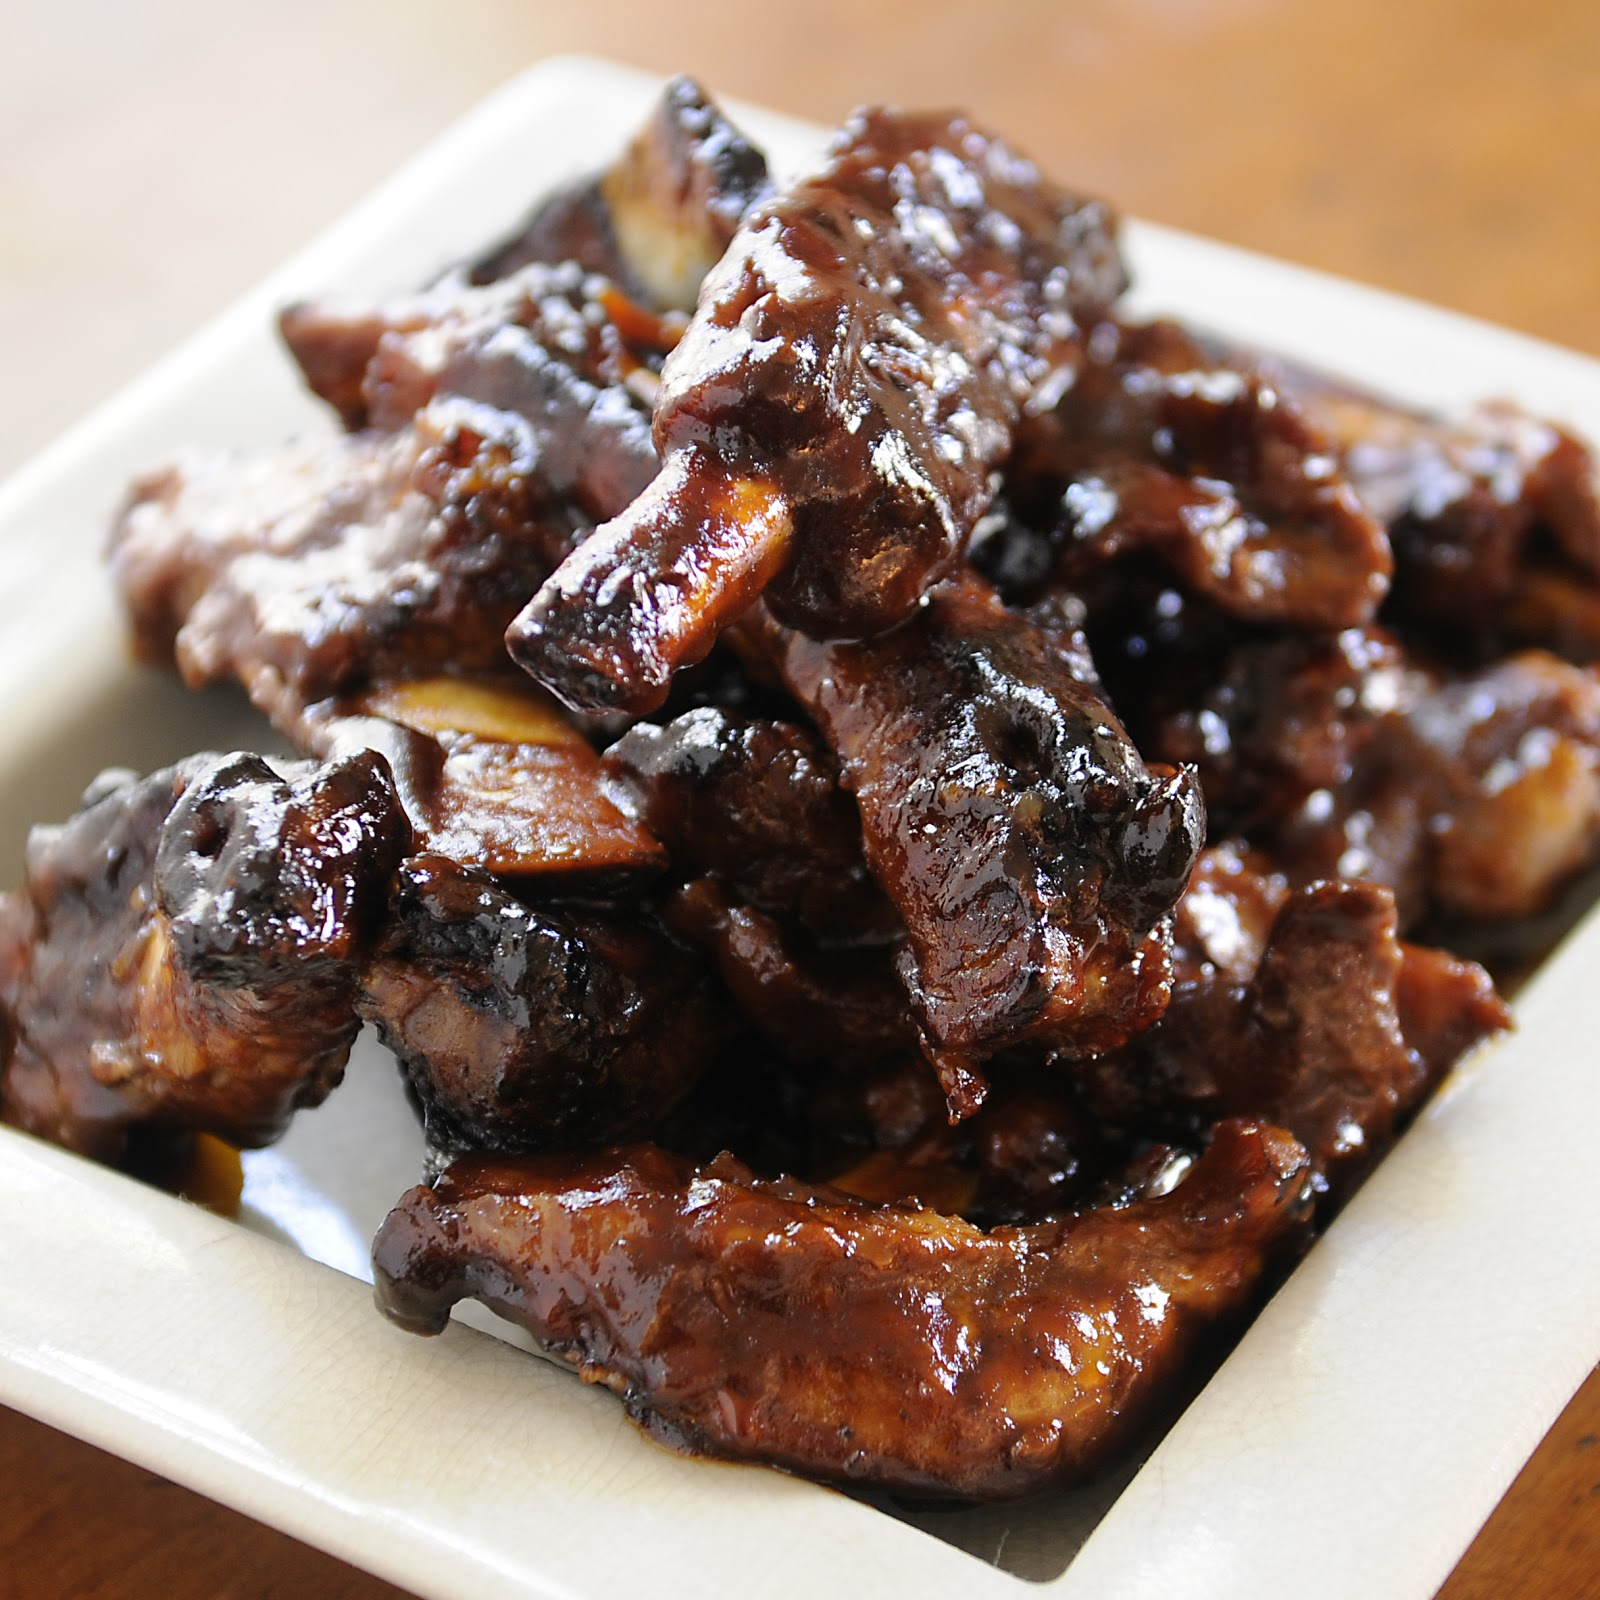 223. Slow Oven Baked Ribs